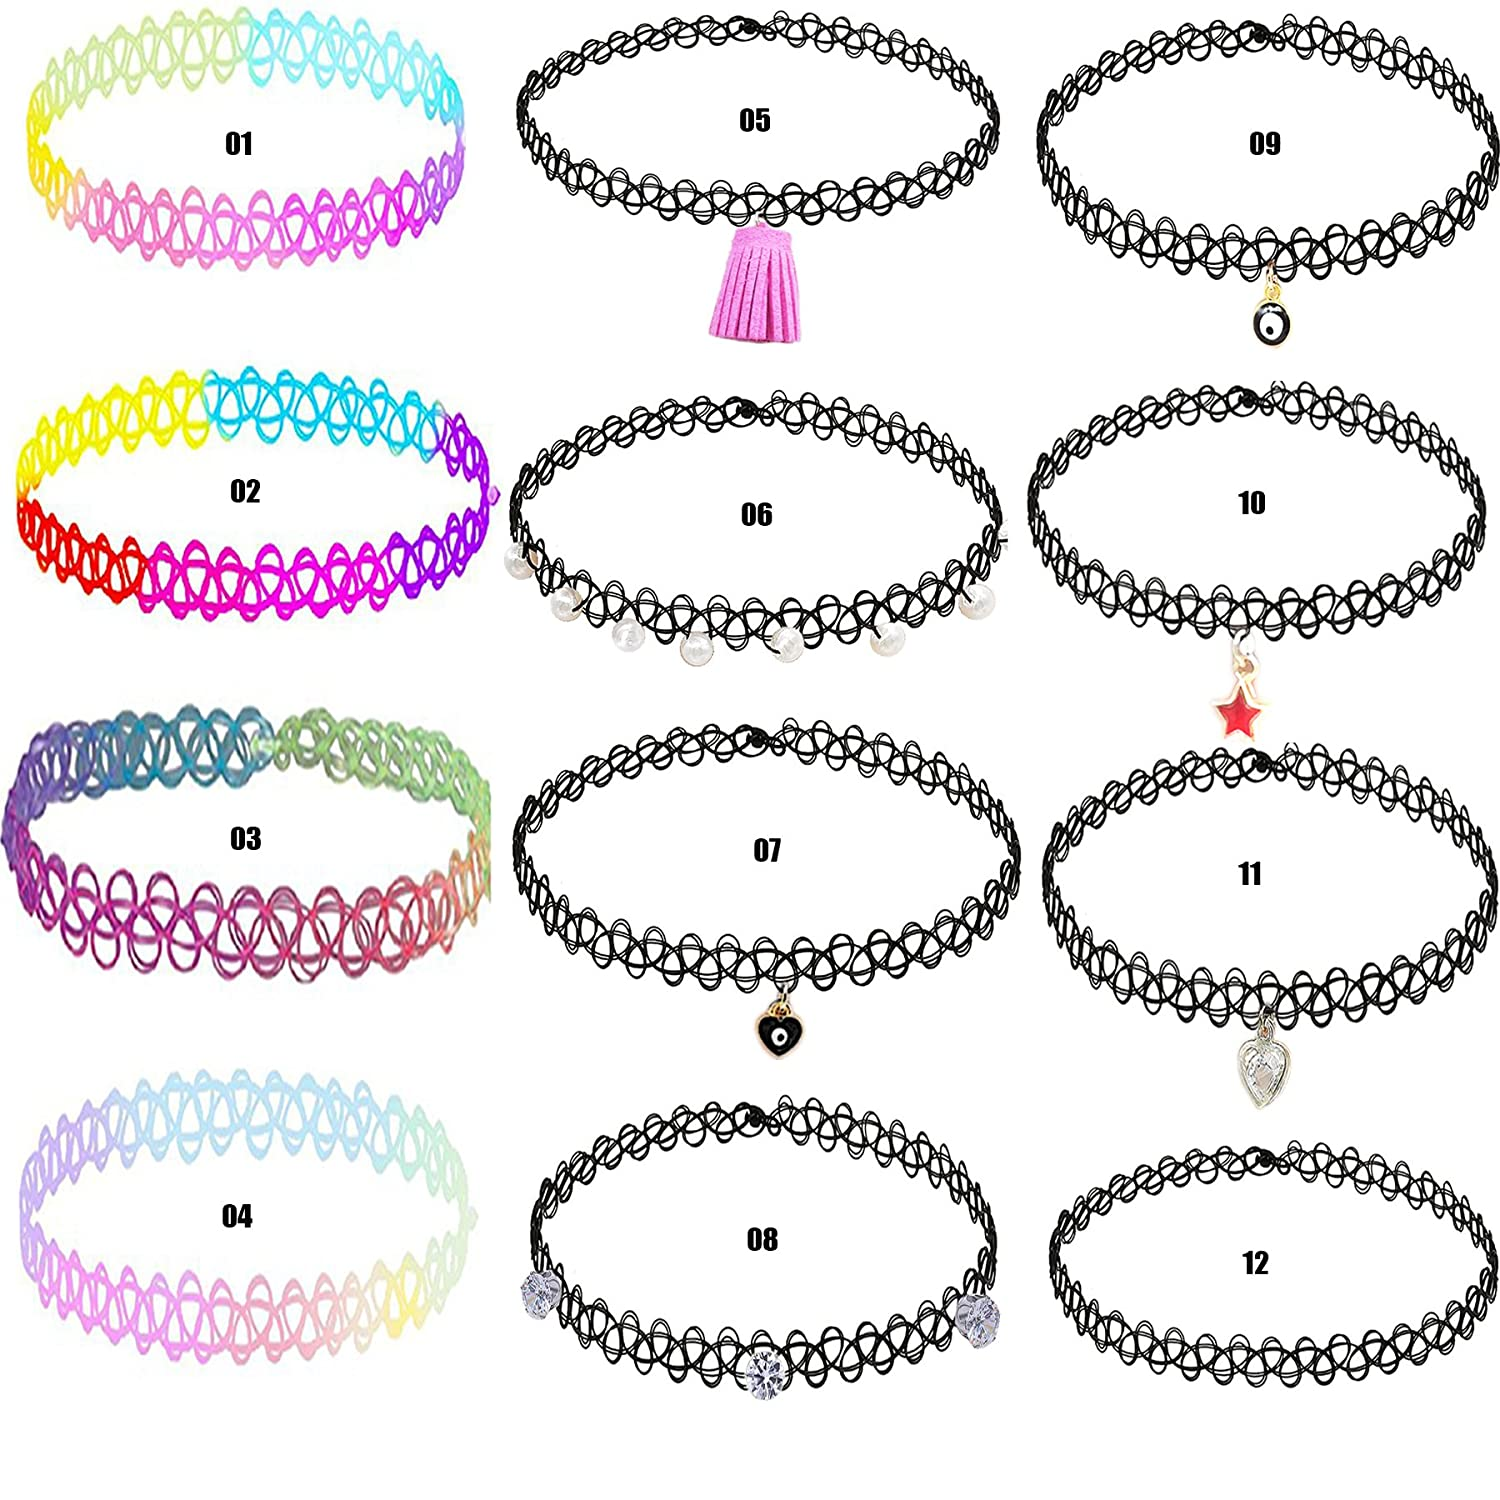 #1 Top Recommendedd Girls Choker-12 PCS Handmade Fashion Classical Girls or babies Gothic Tattoo Charm Choker Necklace Set K&Q Jewelry